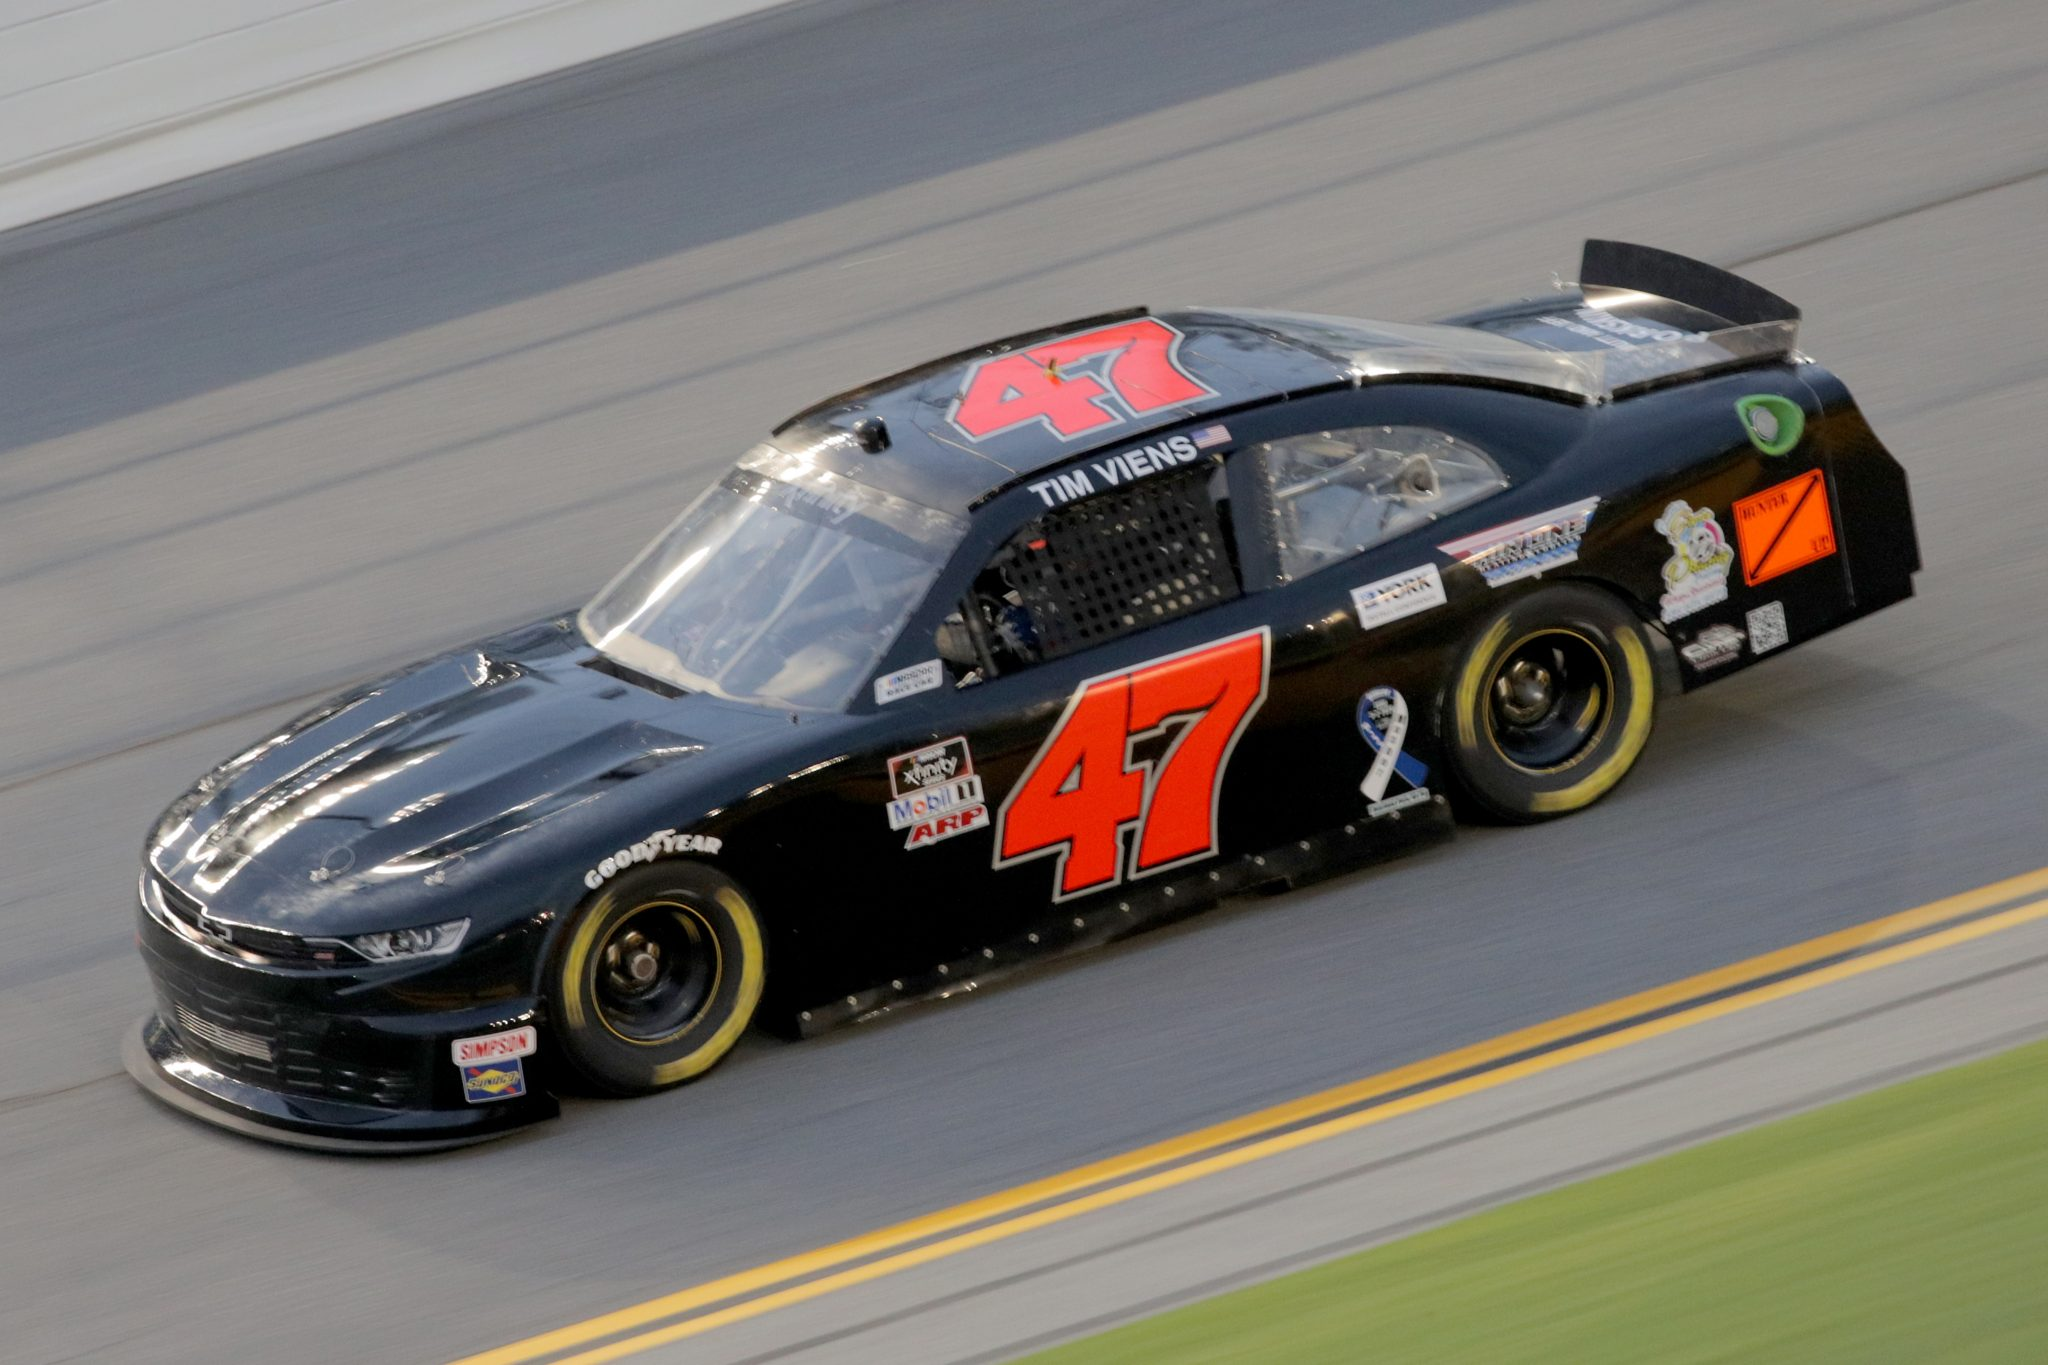 DAYTONA BEACH, FLORIDA - AUGUST 28: Tim Viens, driver of the #47 Thin Blue Line USA Chevrolet, drives during the NASCAR Xfinity Series Wawa 250 Powered by Coca-Cola at Daytona International Speedway on August 28, 2020 in Daytona Beach, Florida. (Photo by Chris Graythen/Getty Images)   Getty Images